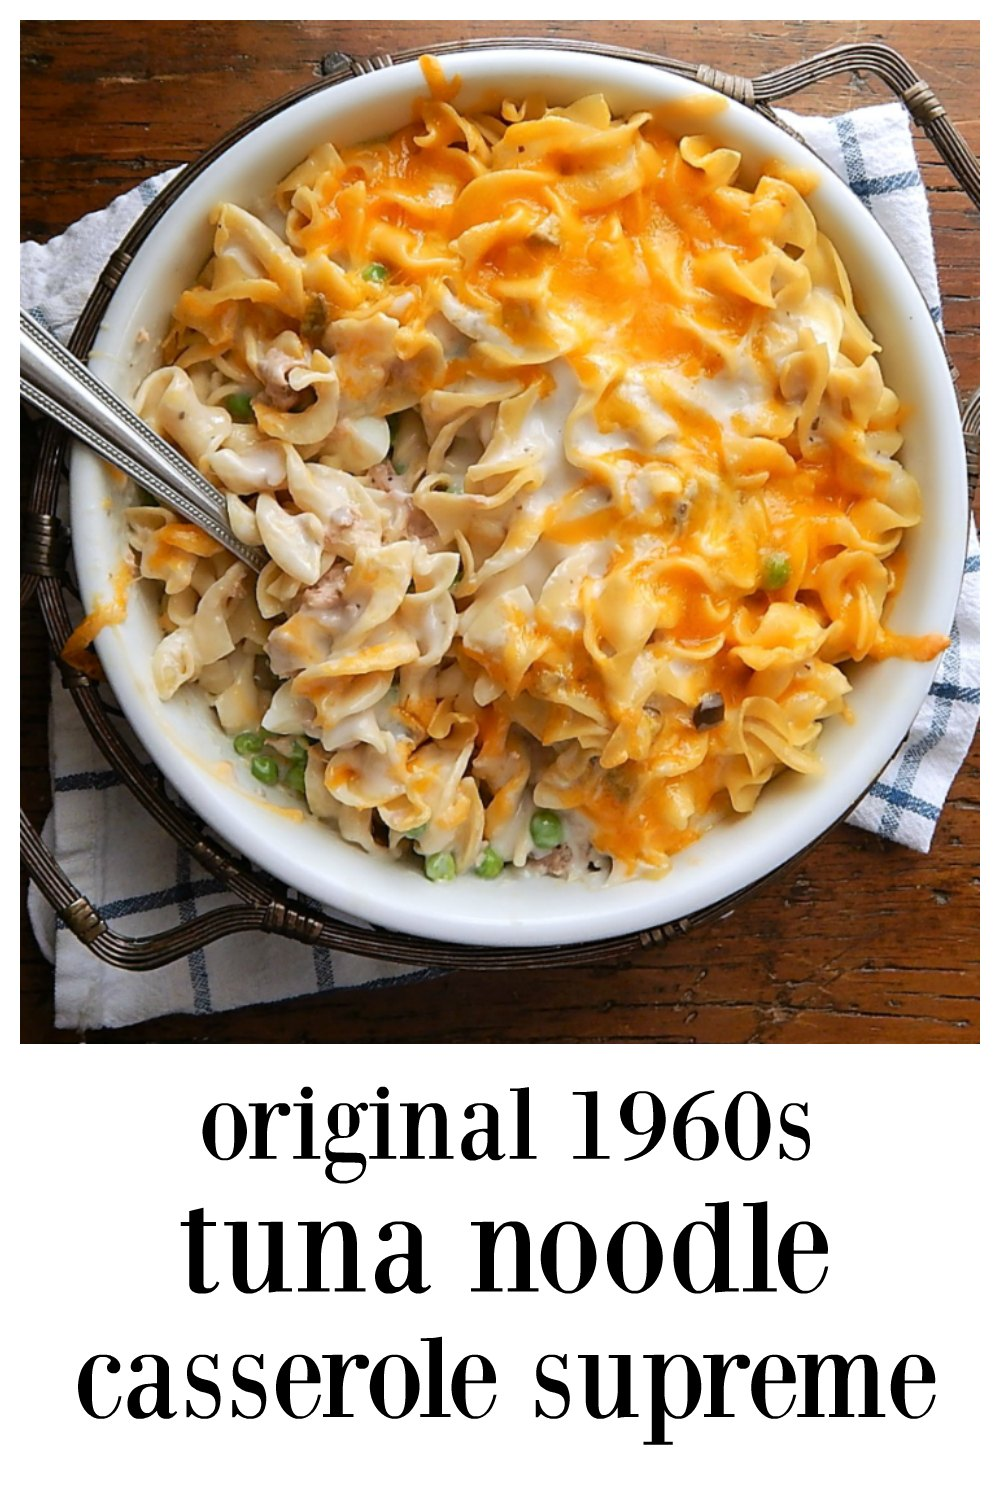 Meta Given's Tuna Noodle Casserole Supreme - this is the original 1960's Tuna Casserole, with or without potato chips. It's fabulous, creamy & delish! #TunaNoodleCasserole #TunaNoodleCasseroleSupreme #TunaCasserole #LentRecipe #MetaGiven